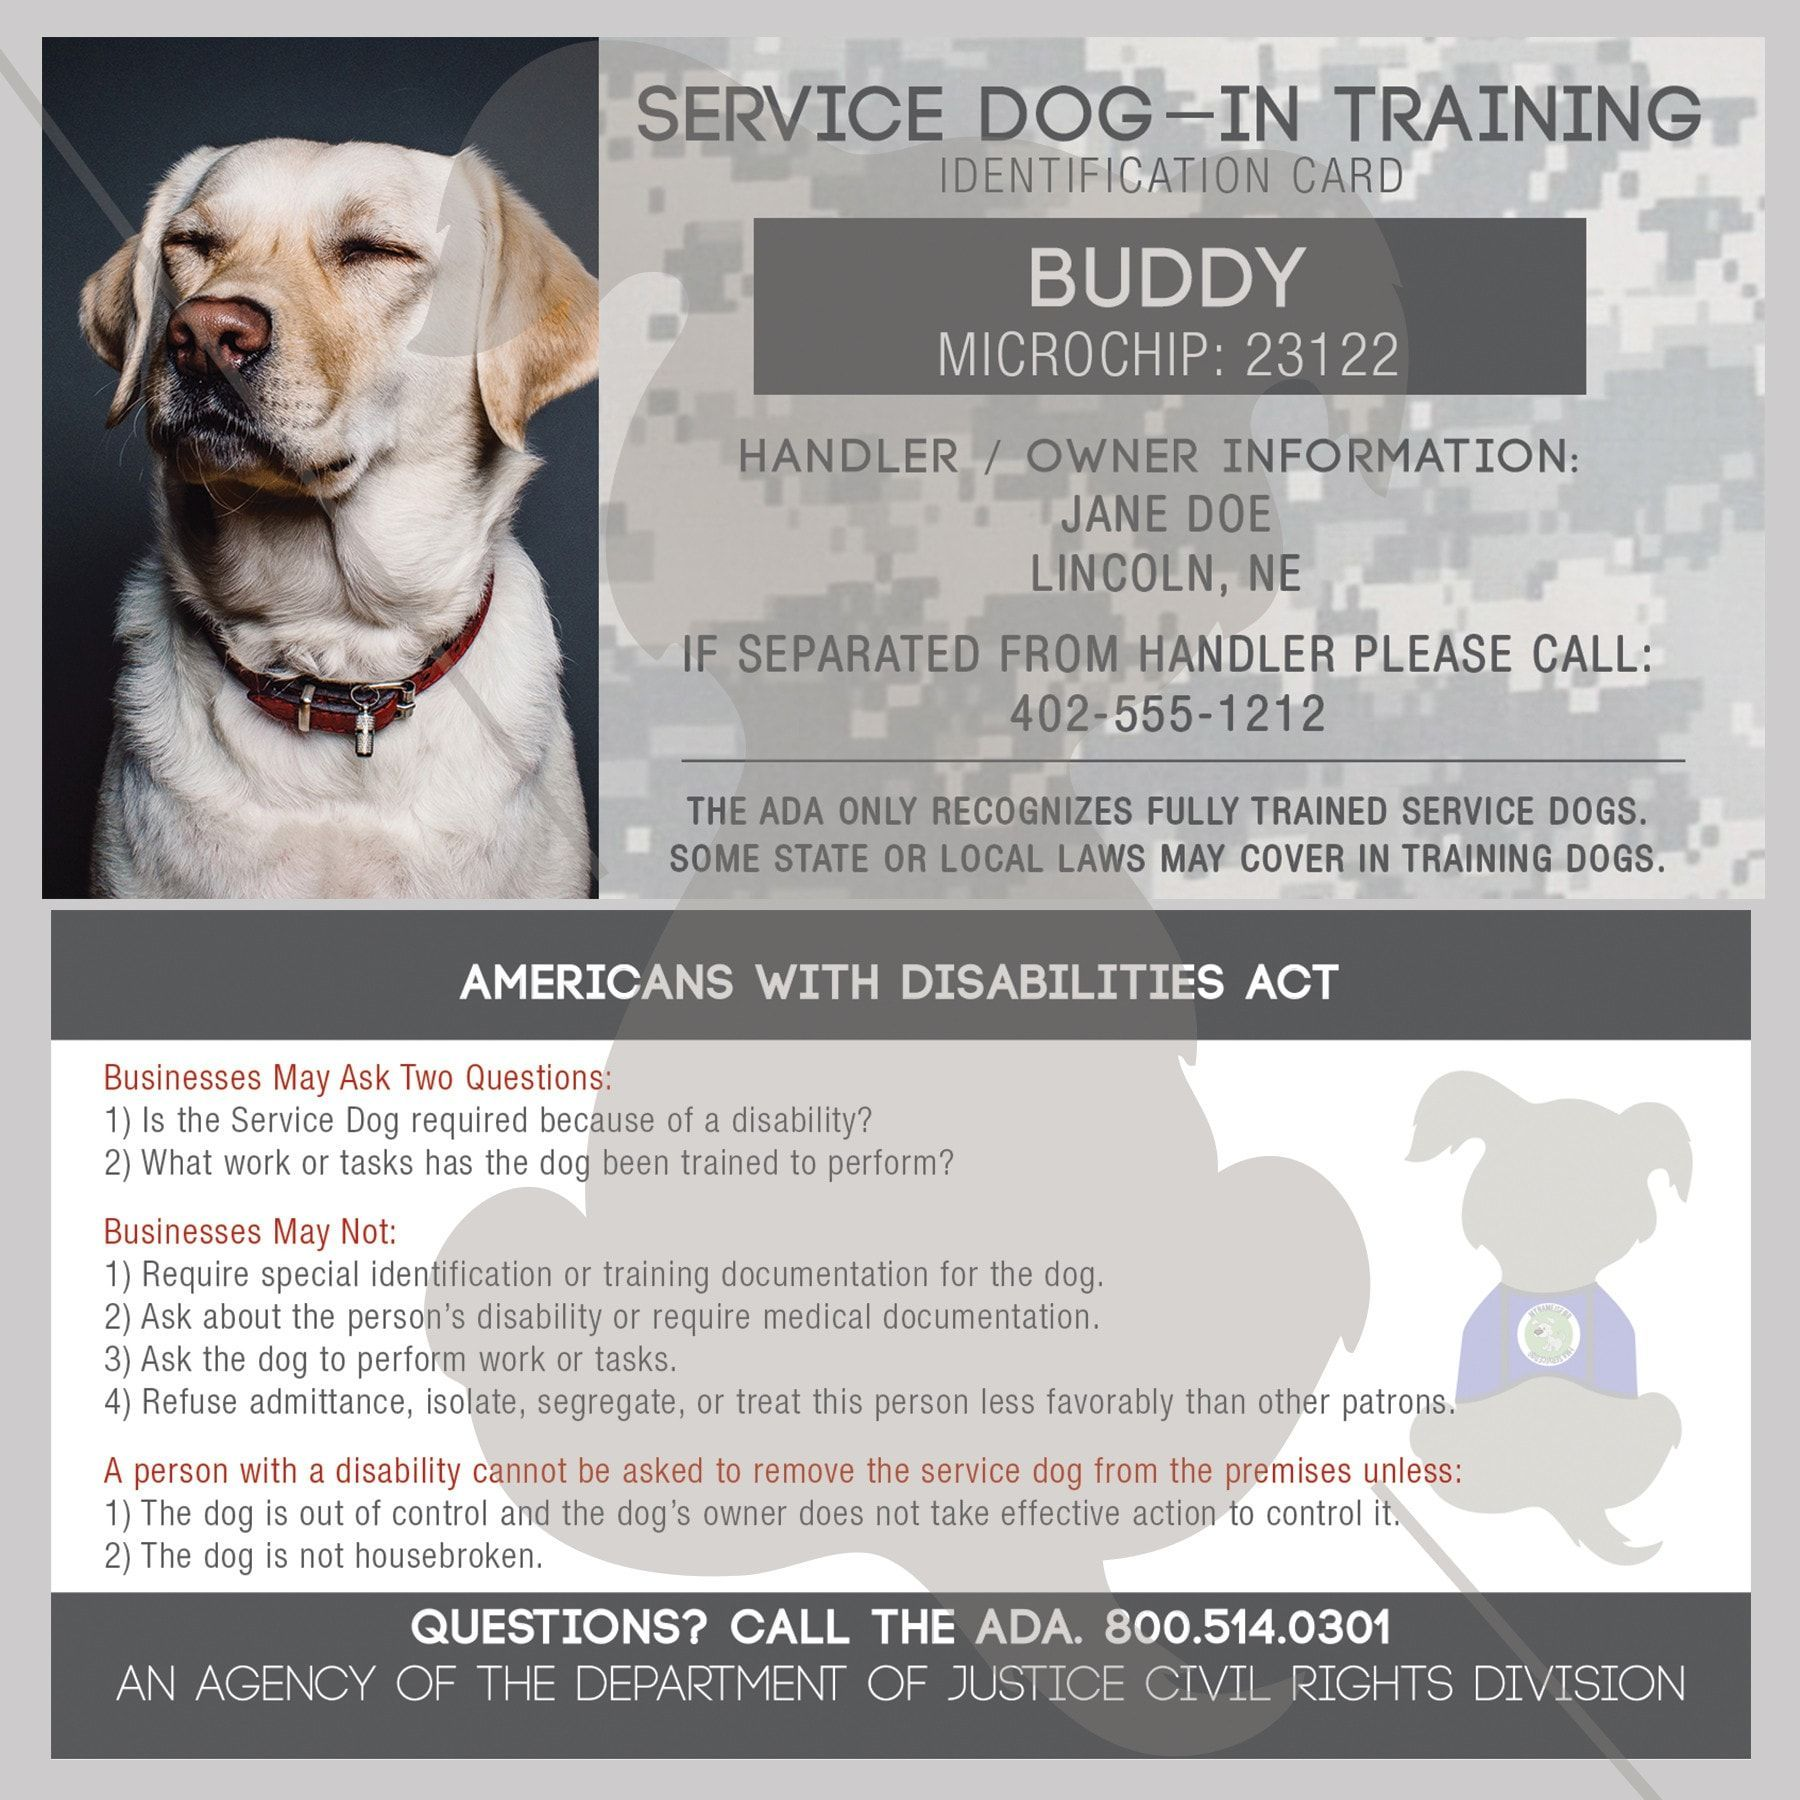 Id Card Service Dog In Training Dog Training Tips Dog